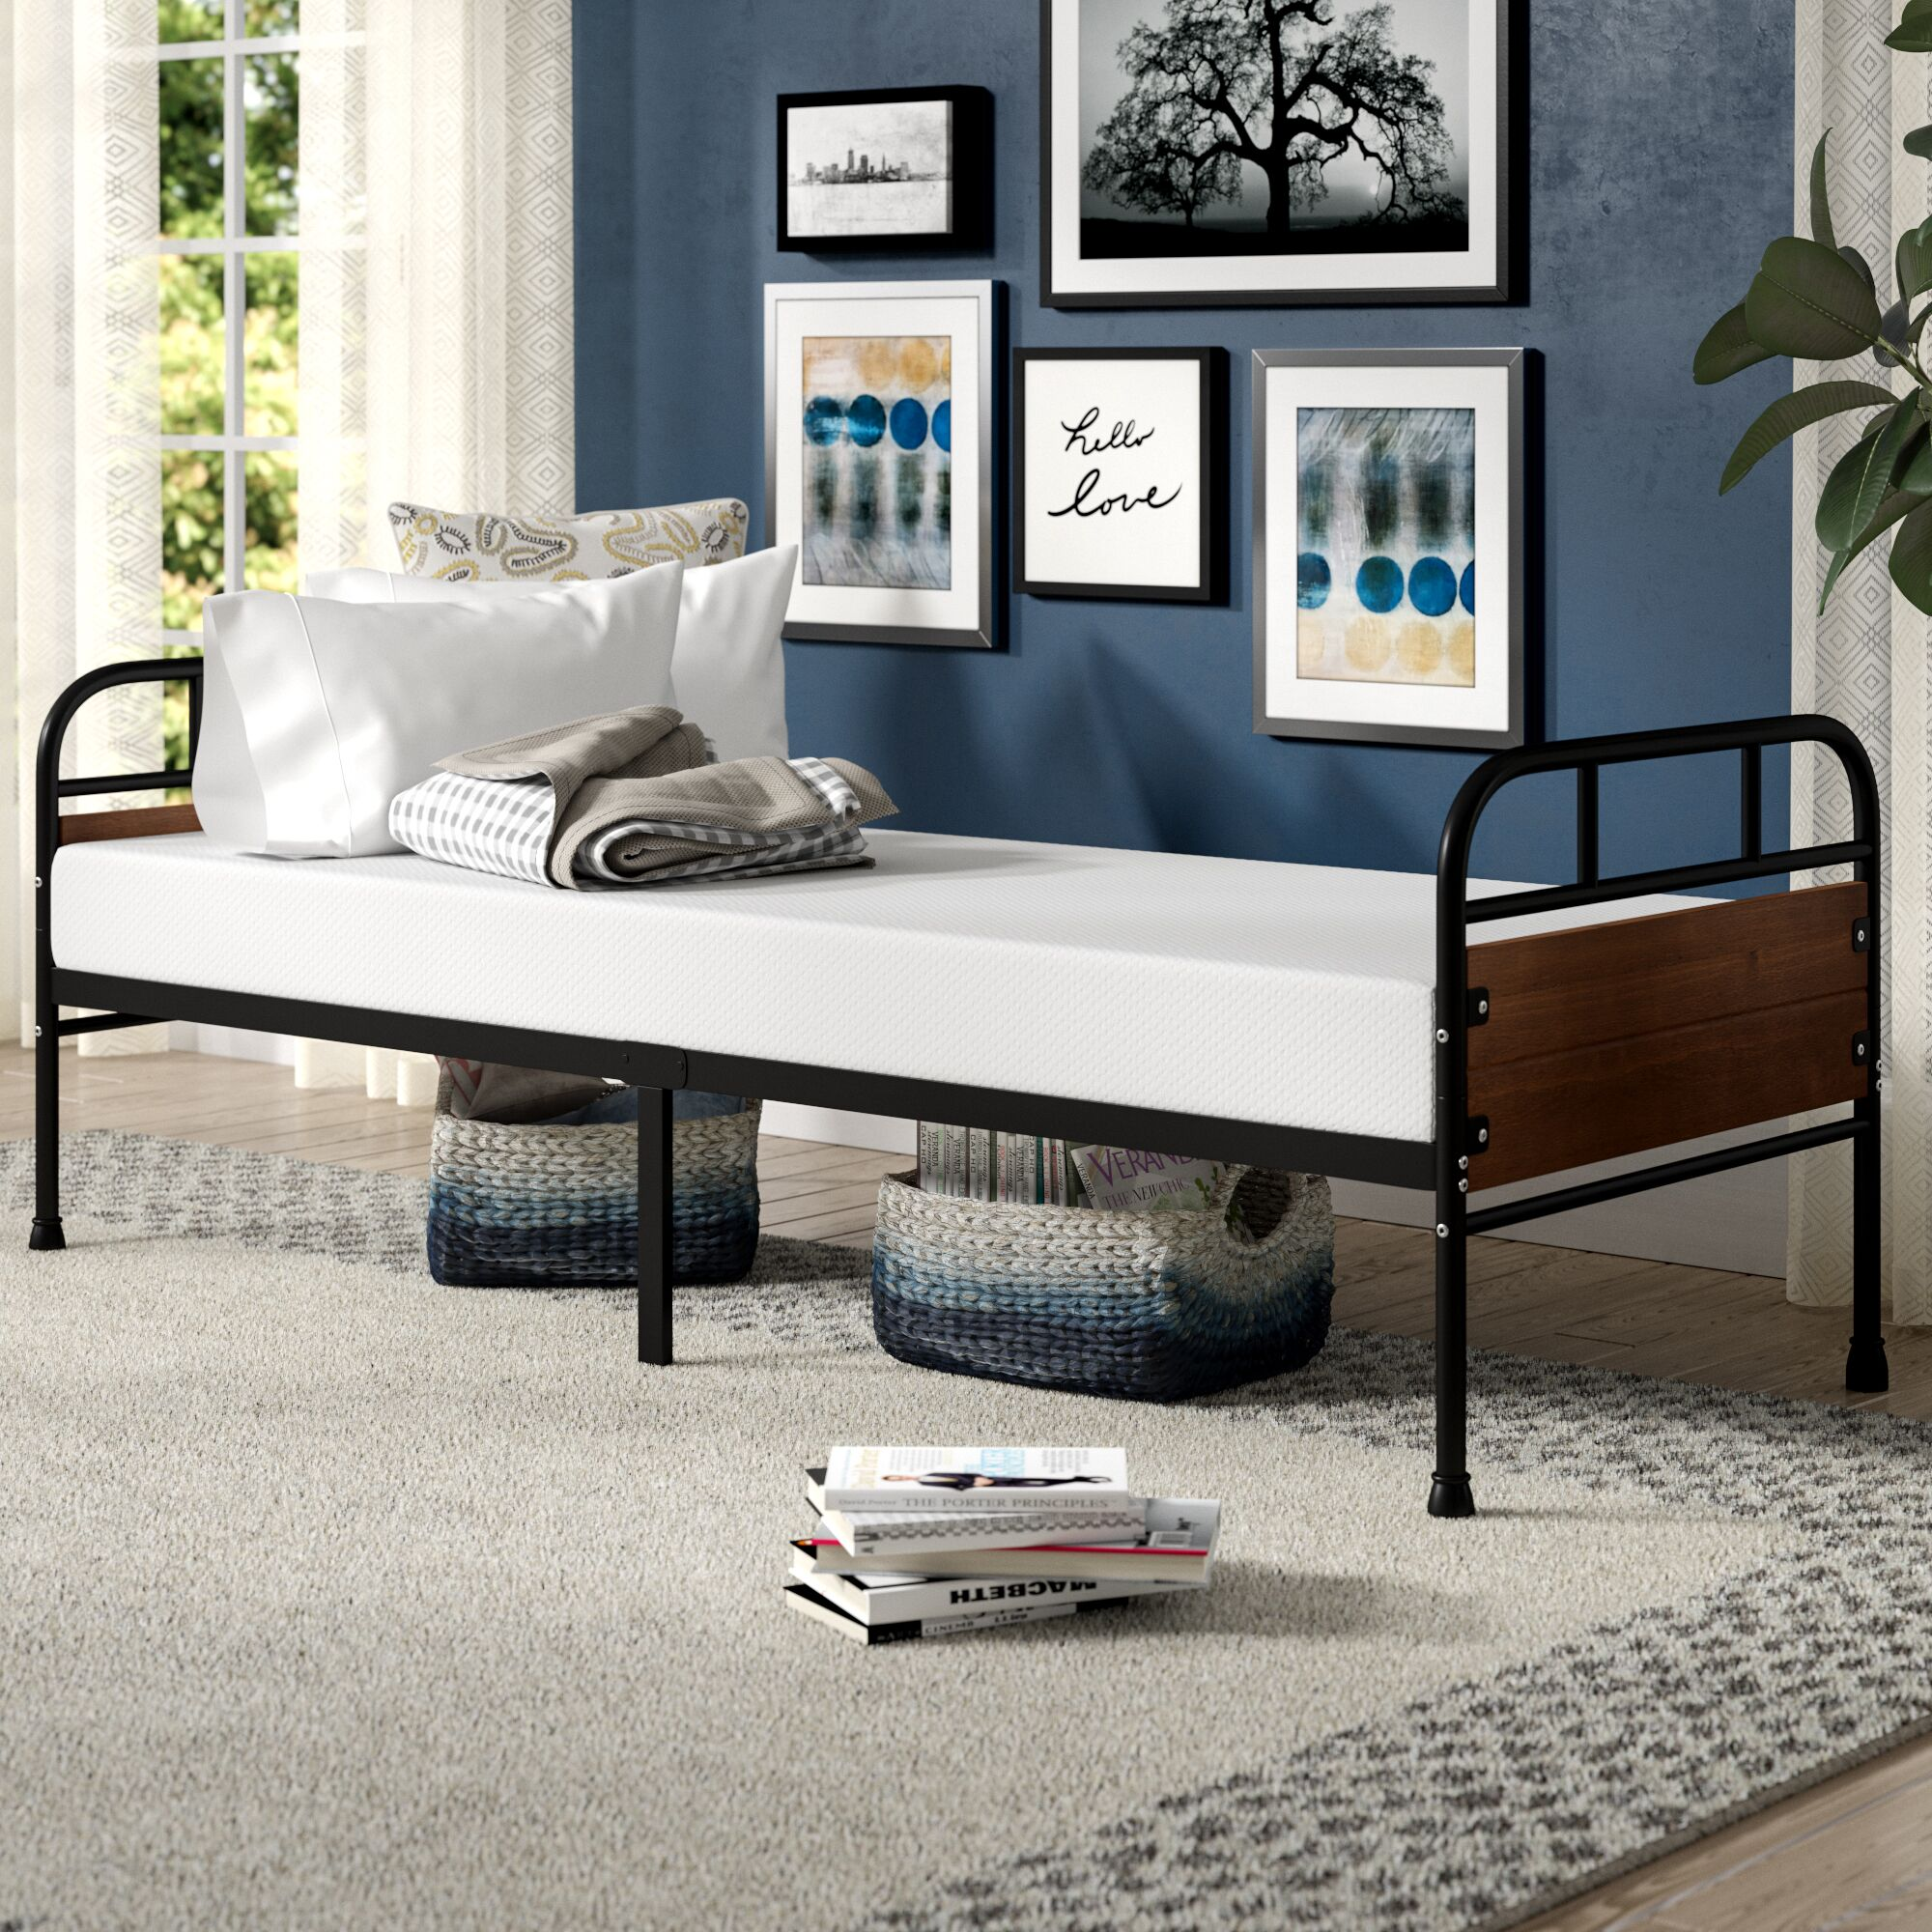 Townsel Narrow Frame Day Bed with Foam Mattress